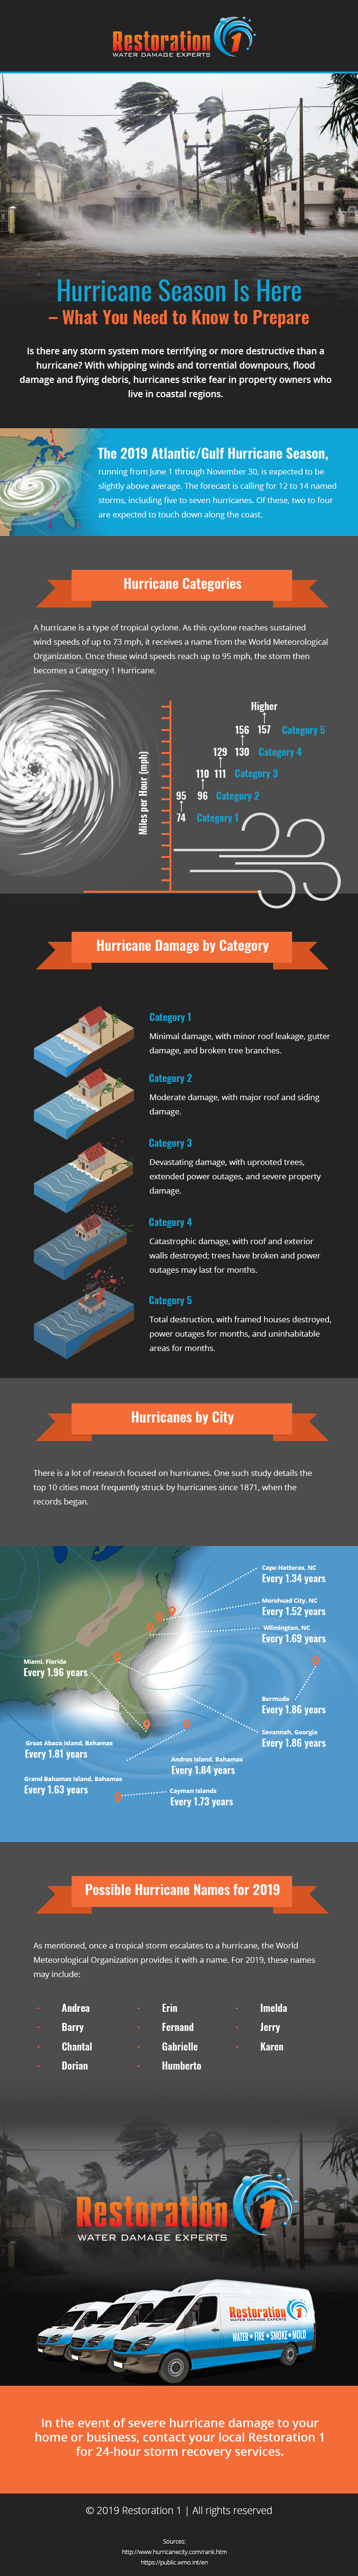 Review And Share Information About The 2019 Hurricane Season Today With This Informative And Educational Infographic.